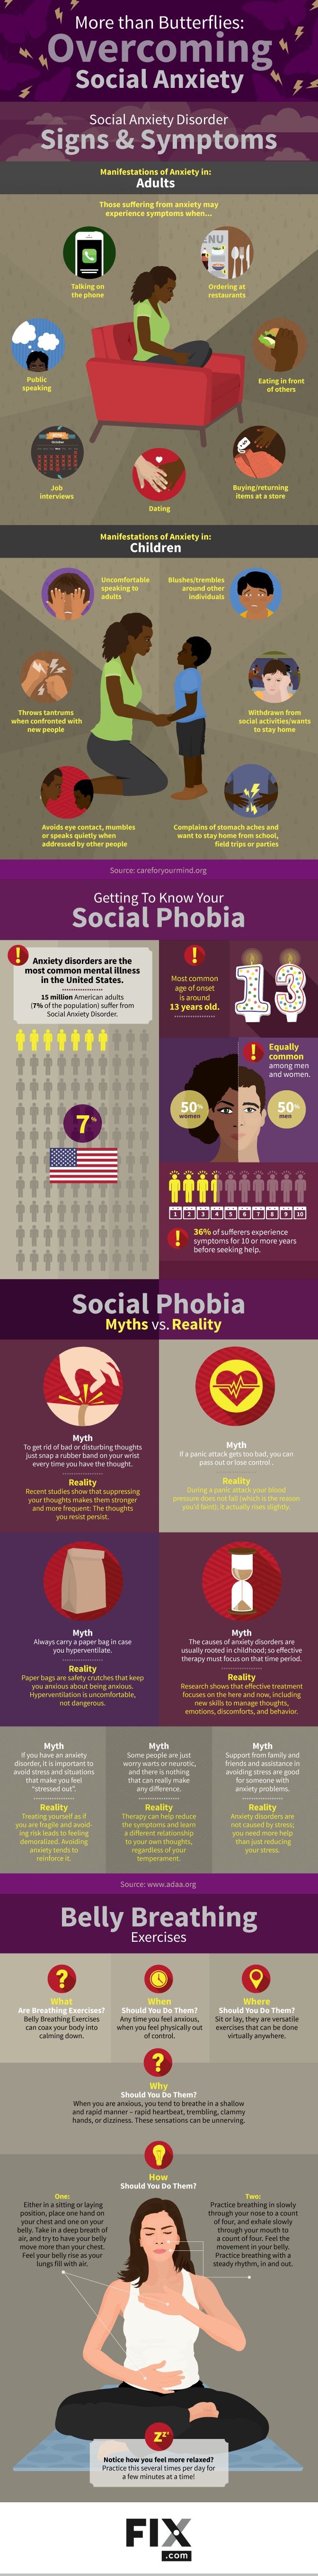 Social Anxiety Disorder is serious, real, and very treatable. End the stigma…